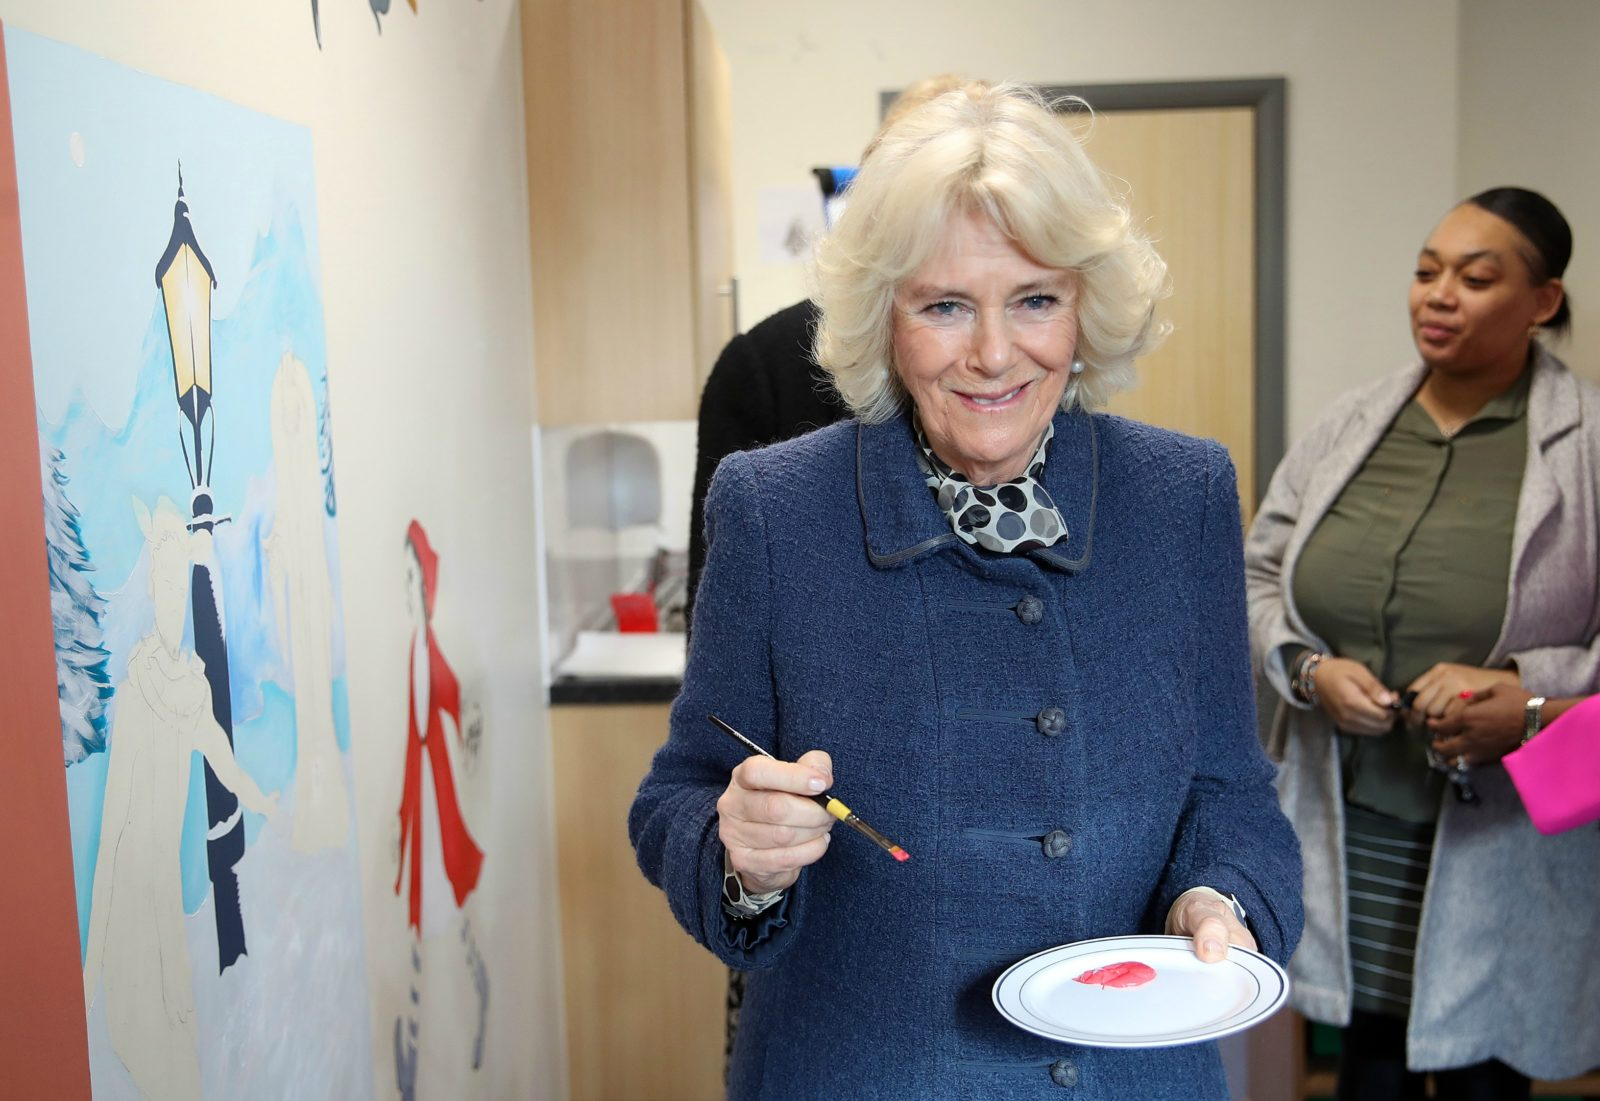 Camilla even tried her hand at painting. Source: Getty.